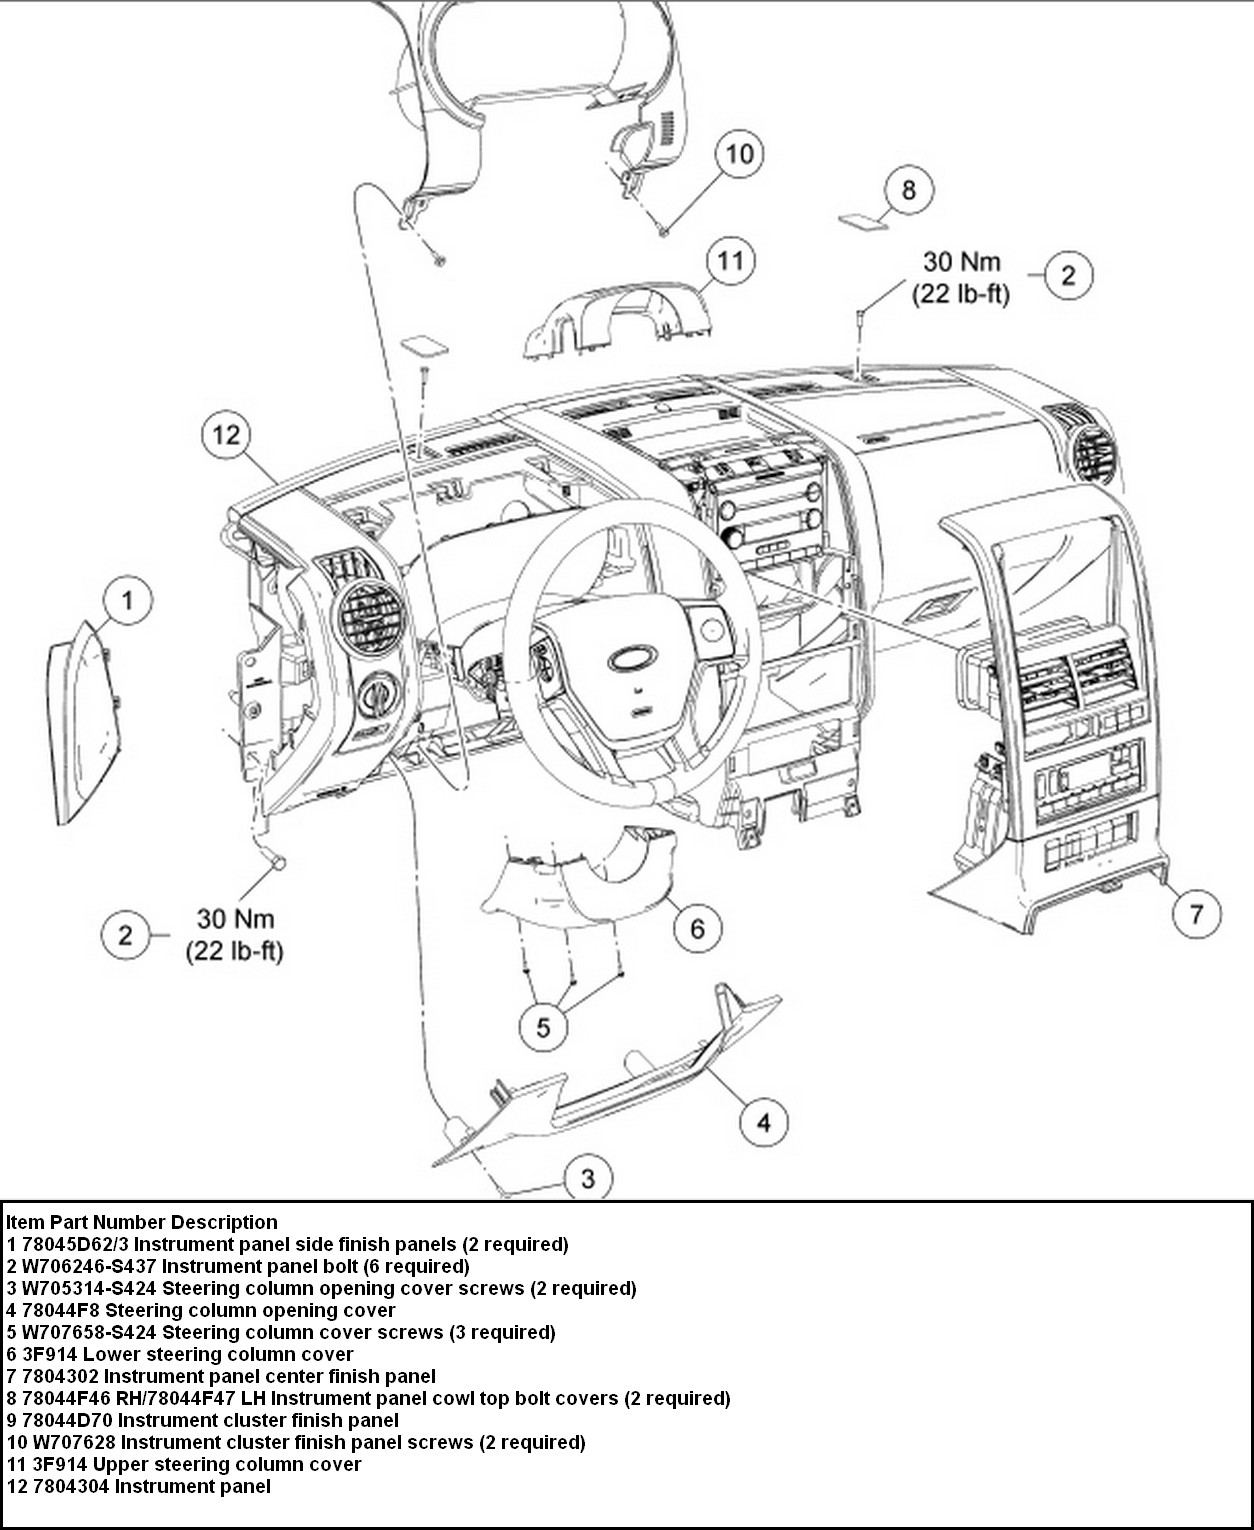 1992 Honda Accord Interior Fuse Box Diagram on 2006 acura tl starter relay